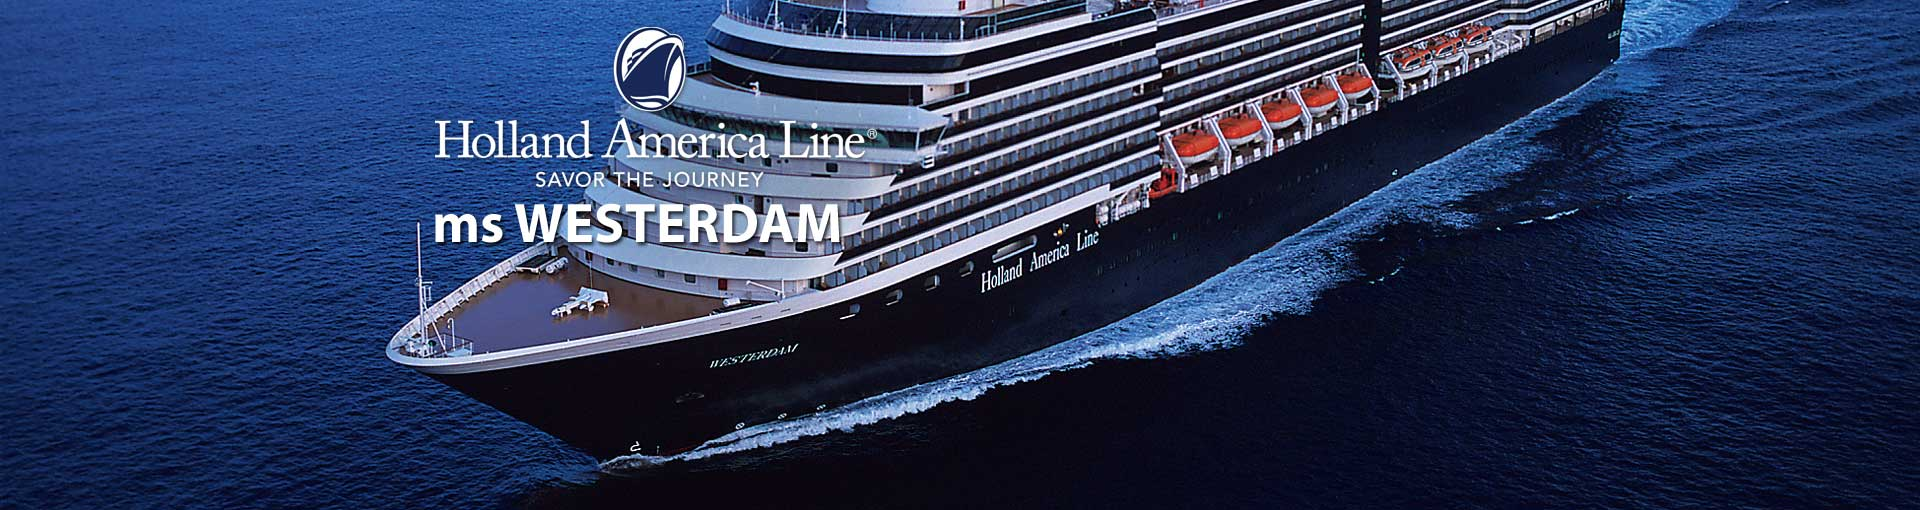 Holland America ms Westerdam cruise ship